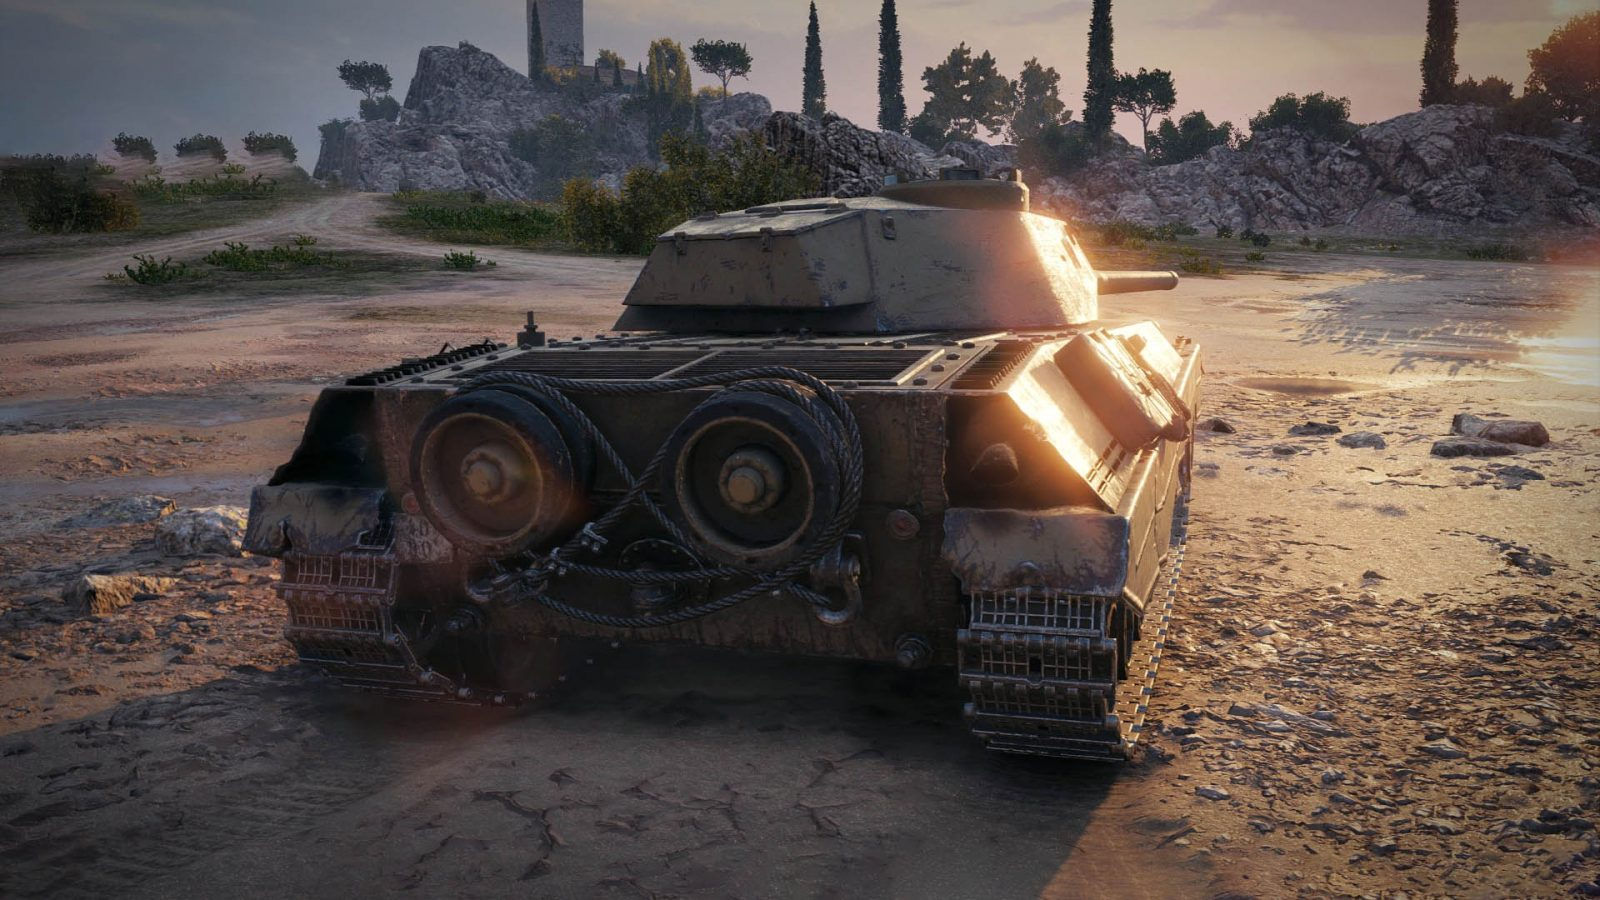 World of Tanks publisher opens new UK studio to work on something completely different